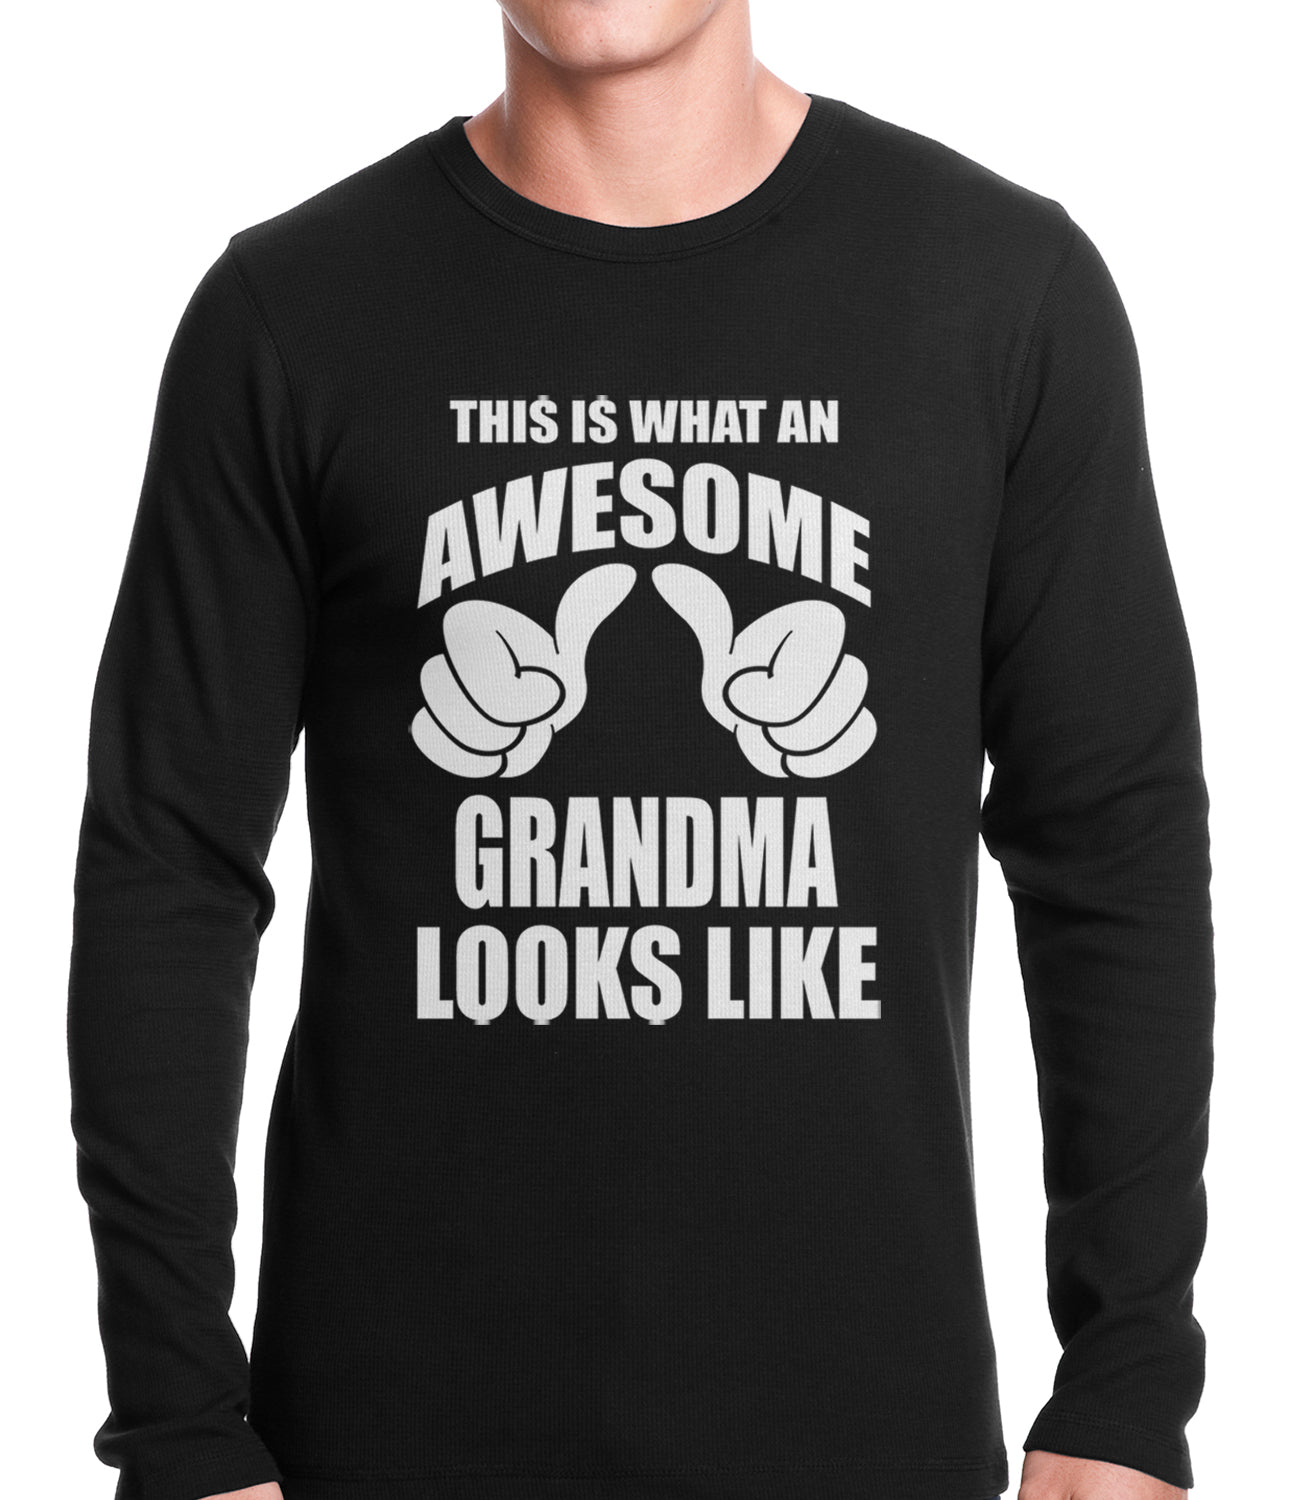 This Is What An Awesome Grandma Looks Like Thermal Shirt